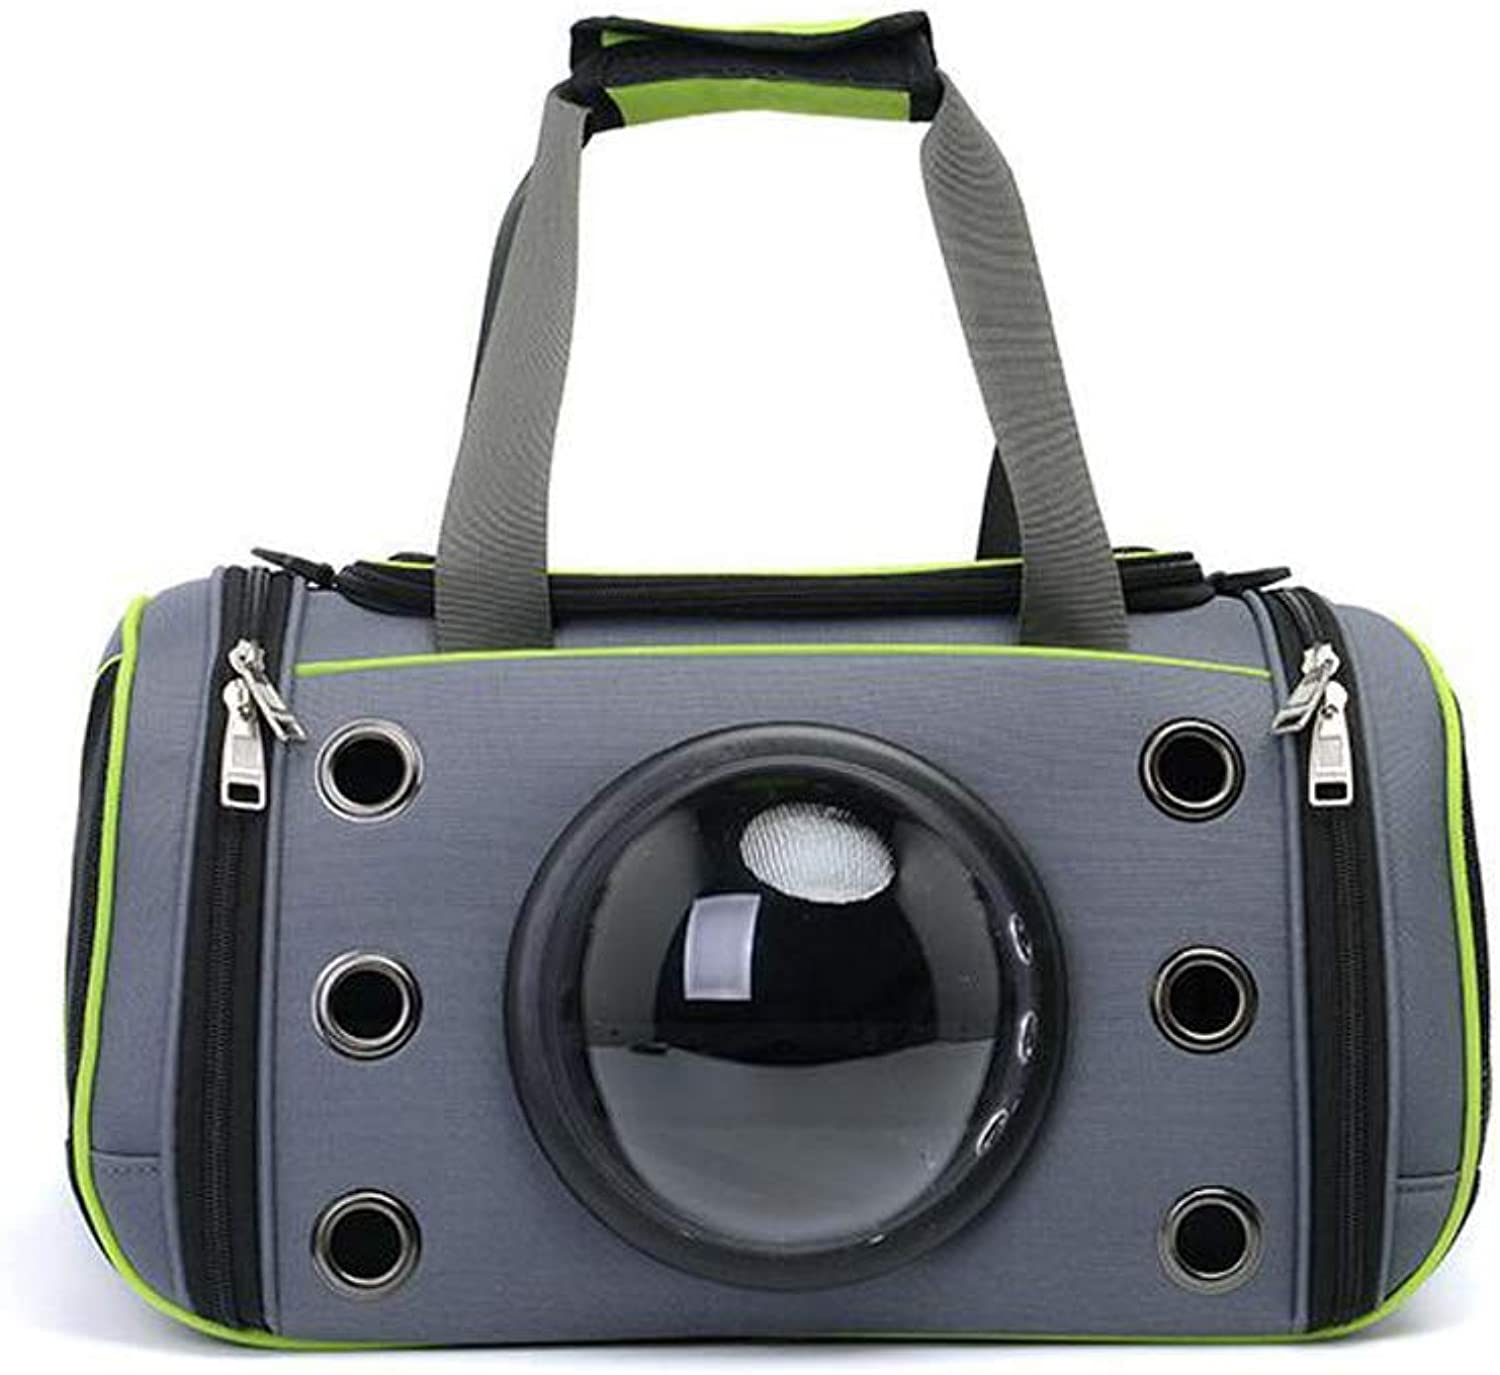 FJH Portable Space Capsule Pet Travel Bag Cat Aviation Small Teddy Dog Backpack Cat Bag Pet Supplies (color   Green)